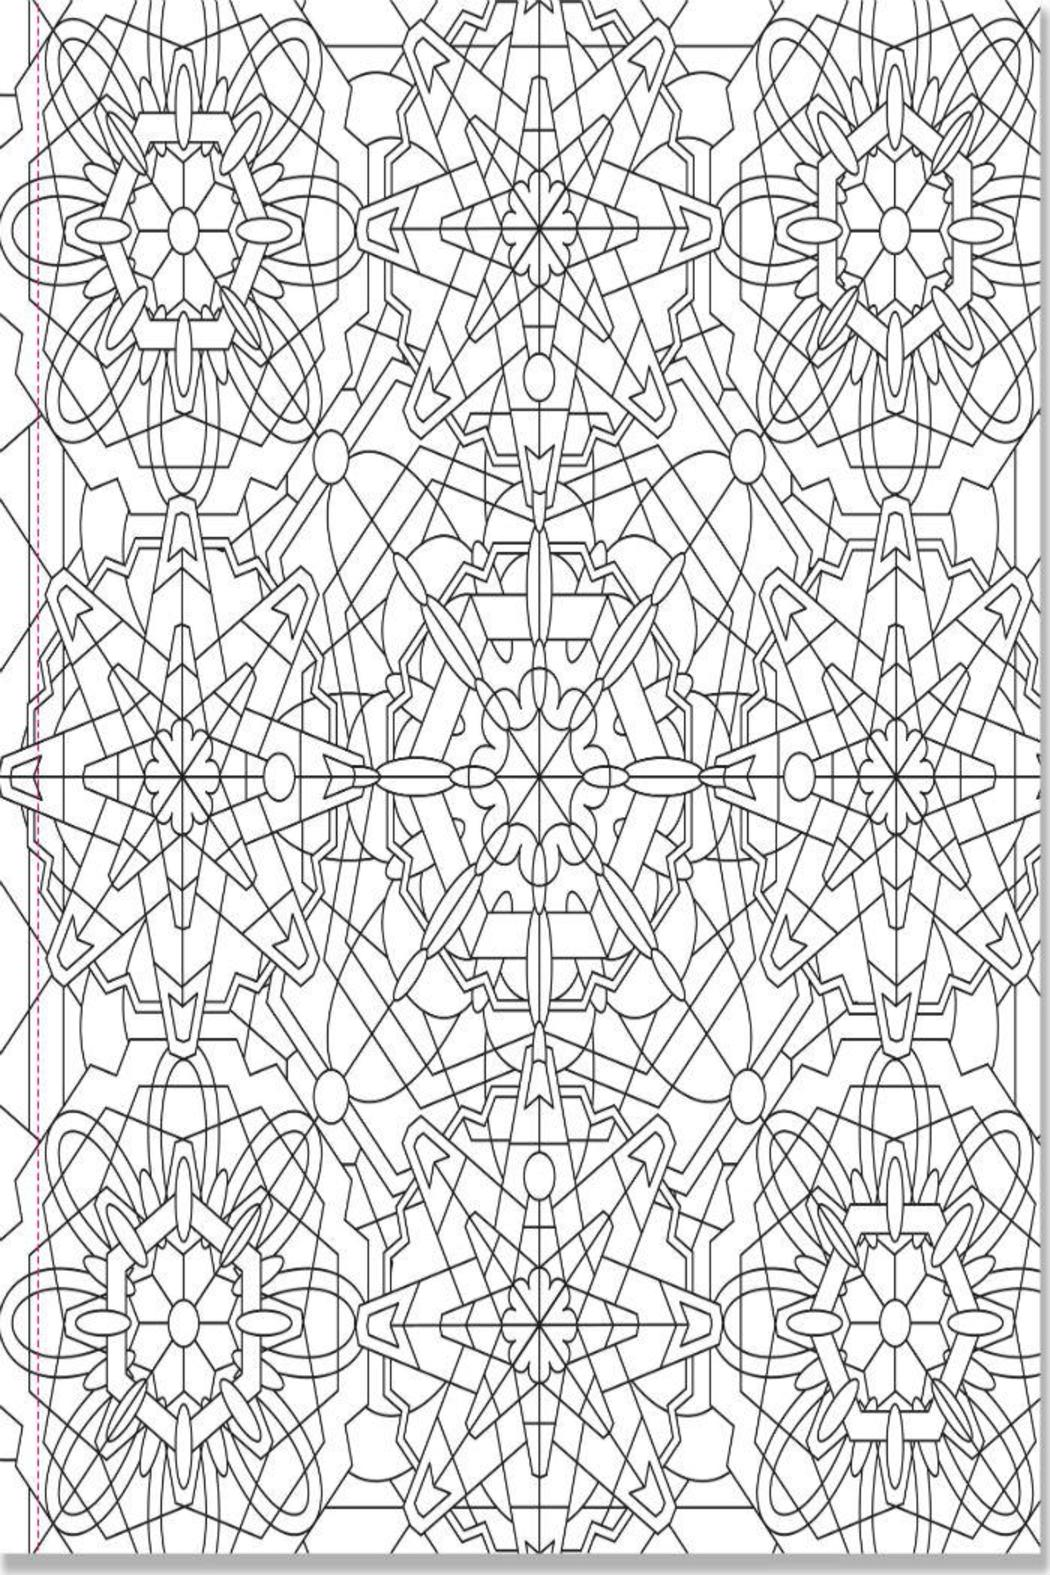 Peter Pauper Press Kaleidoscope Coloring Book